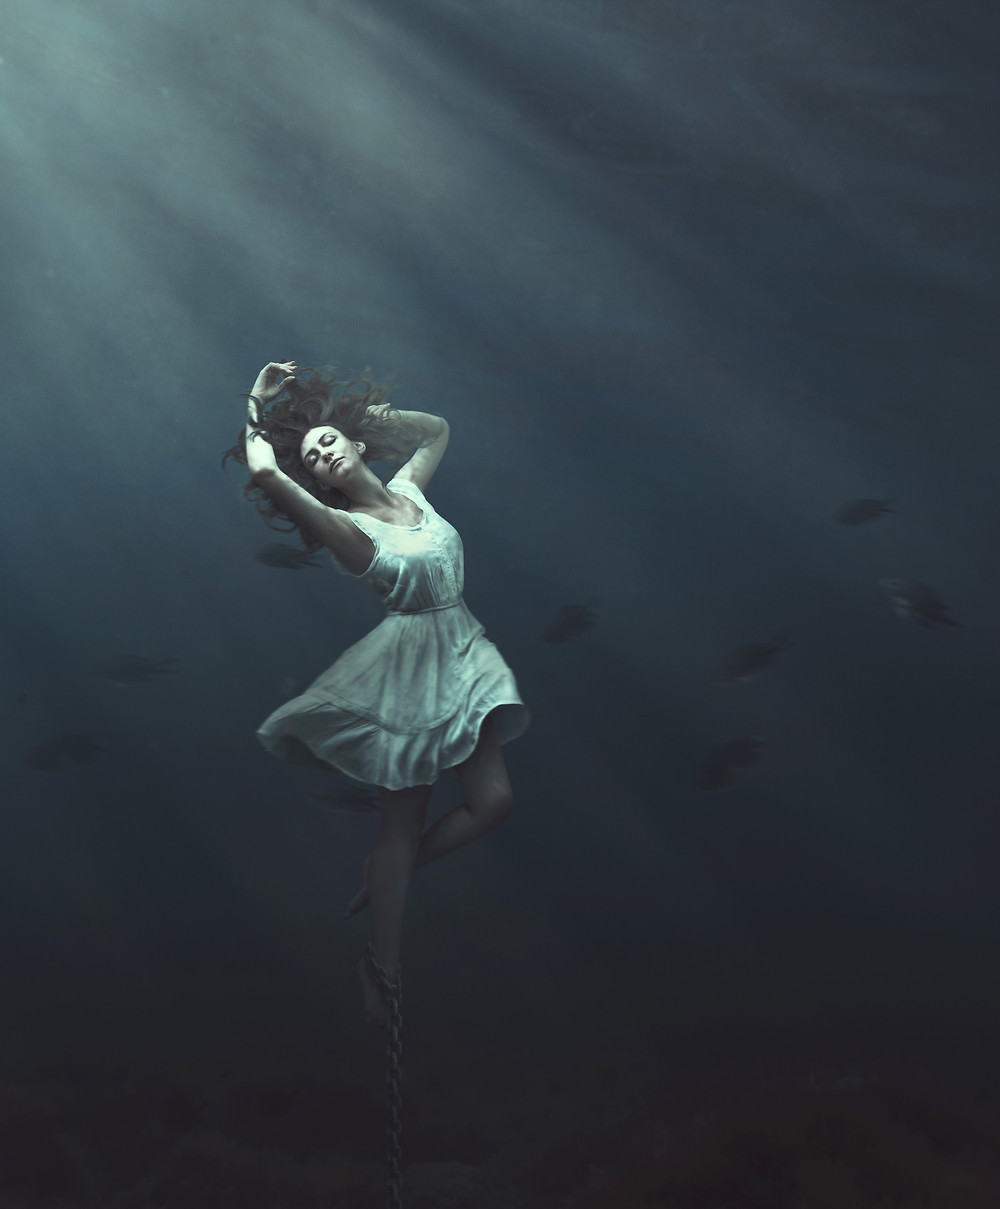 Trapped Underwater  This image is created by a combination of several photos. The girl is photographed in my photo studio and added to my underwater photos. Photographs symbolize reconciliation with imprisonment under water.